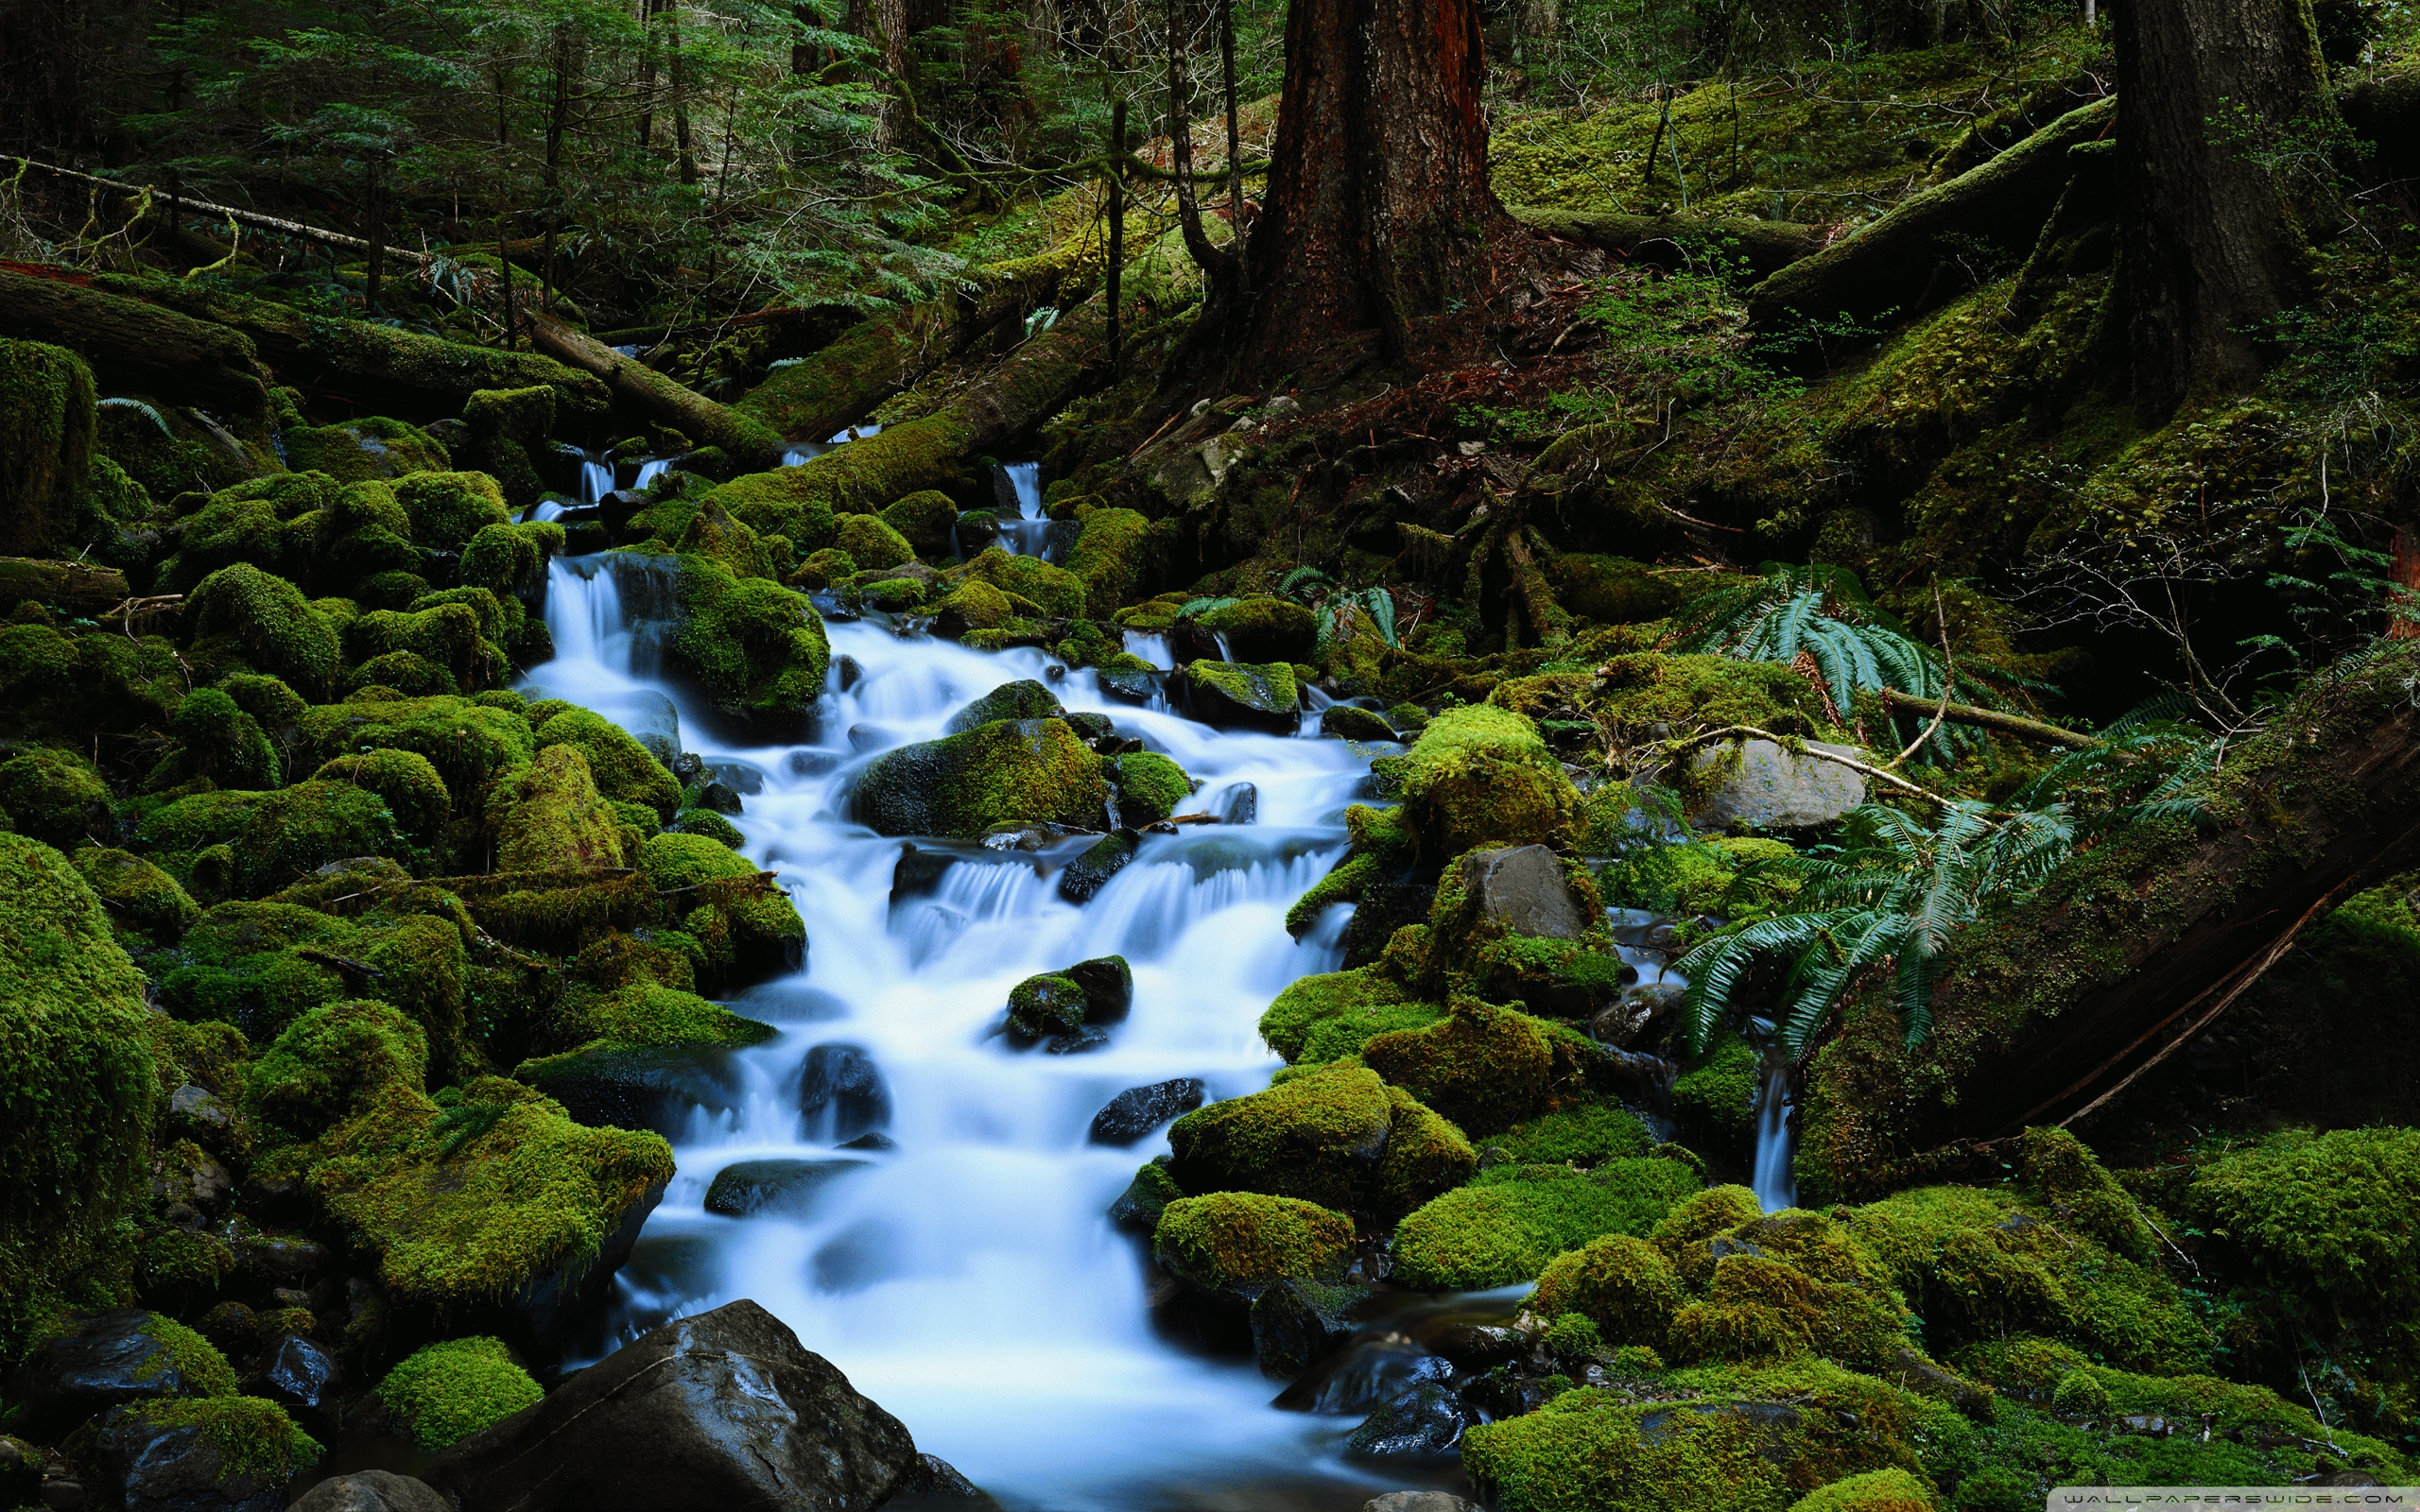 Forest clipart water stream Image clipart wallpaper a Mountain